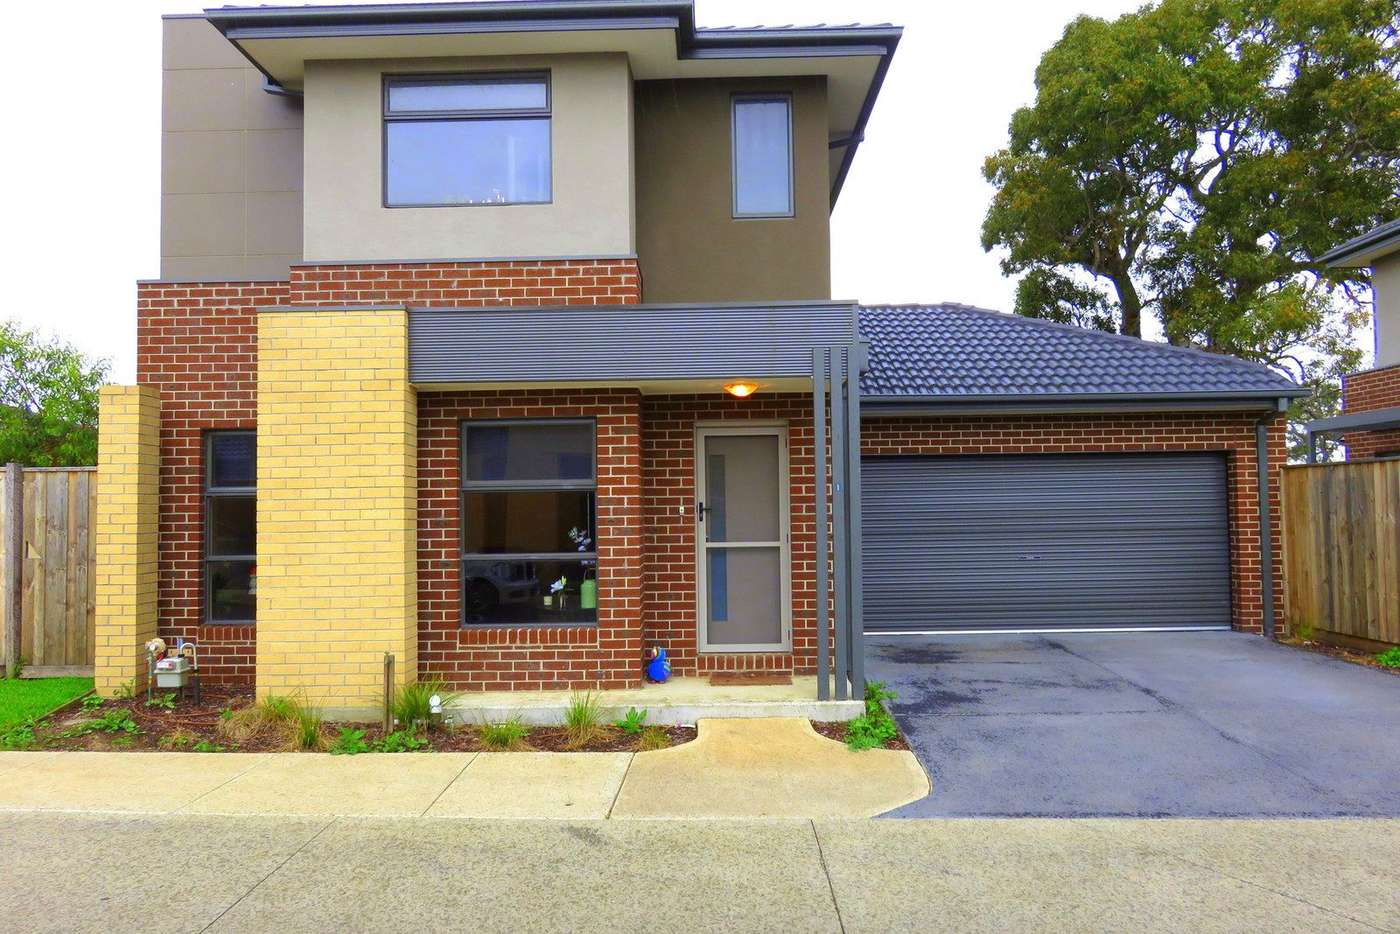 Main view of Homely house listing, 1 Burssi Circuit, Doreen VIC 3754